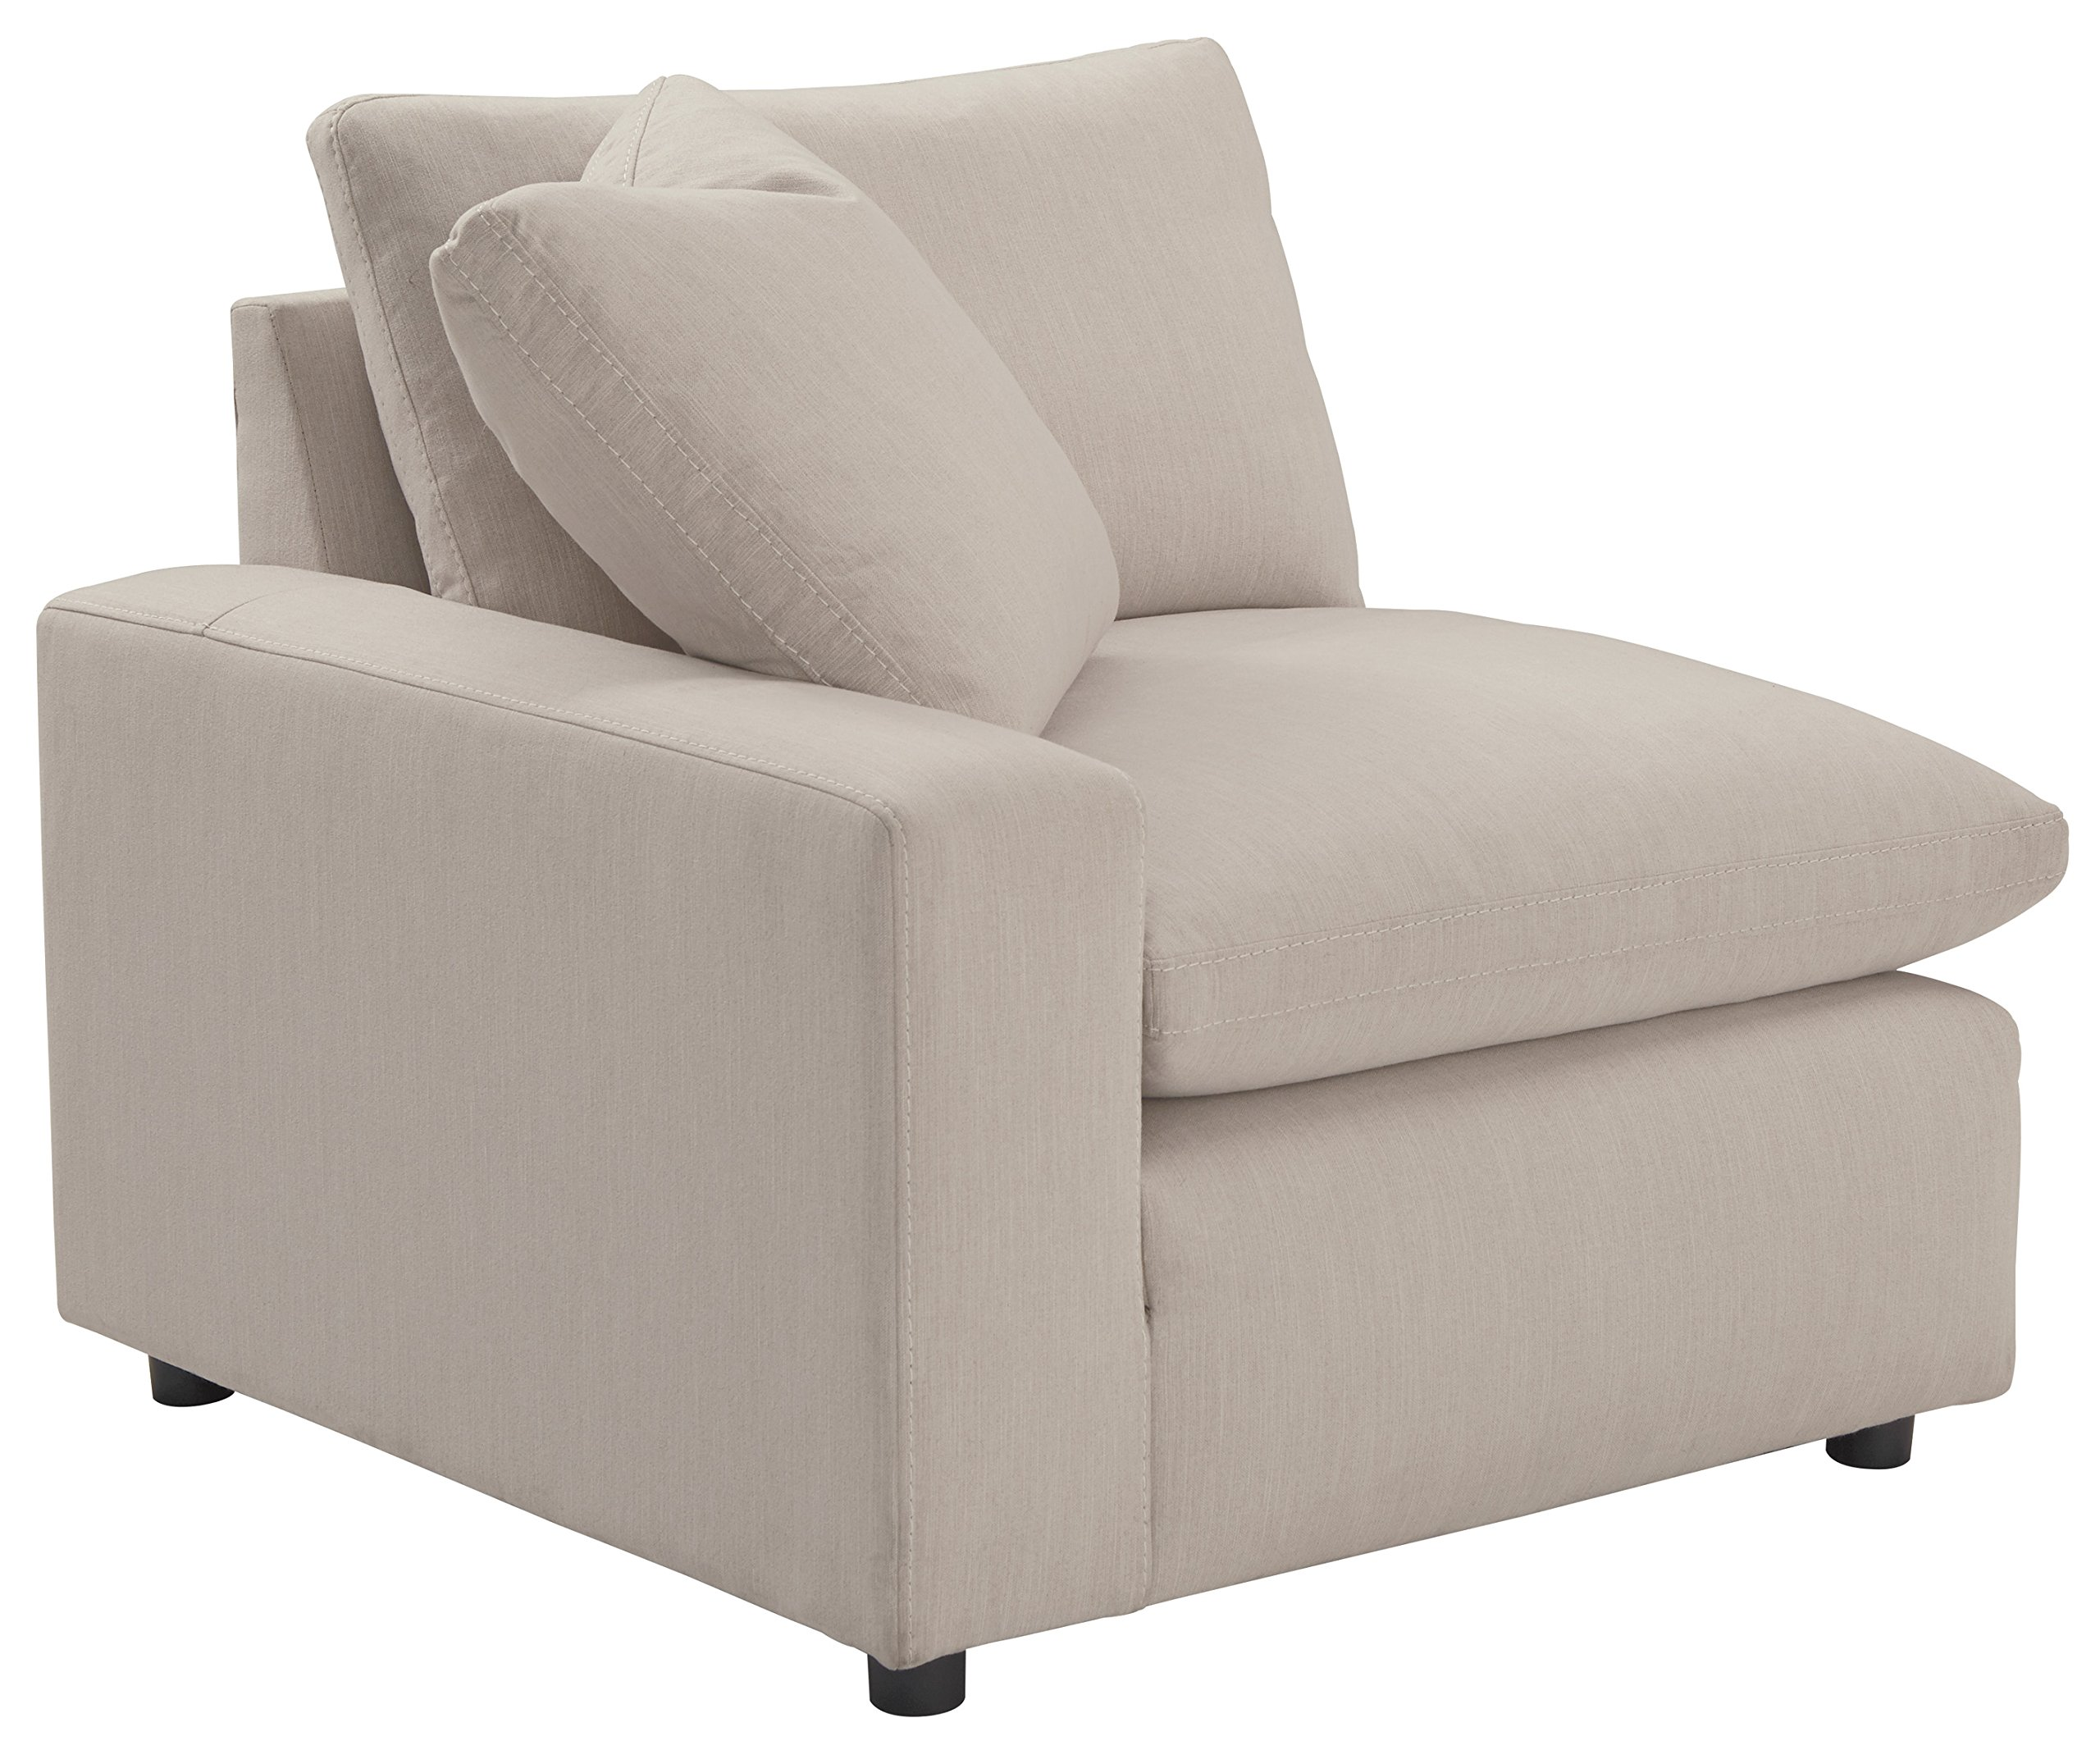 Ashley Furniture Signature Design - Savesto Contemporary Left Arm Facing Corner Chair - Standalone or Sectional Component - Ivory by Signature Design by Ashley